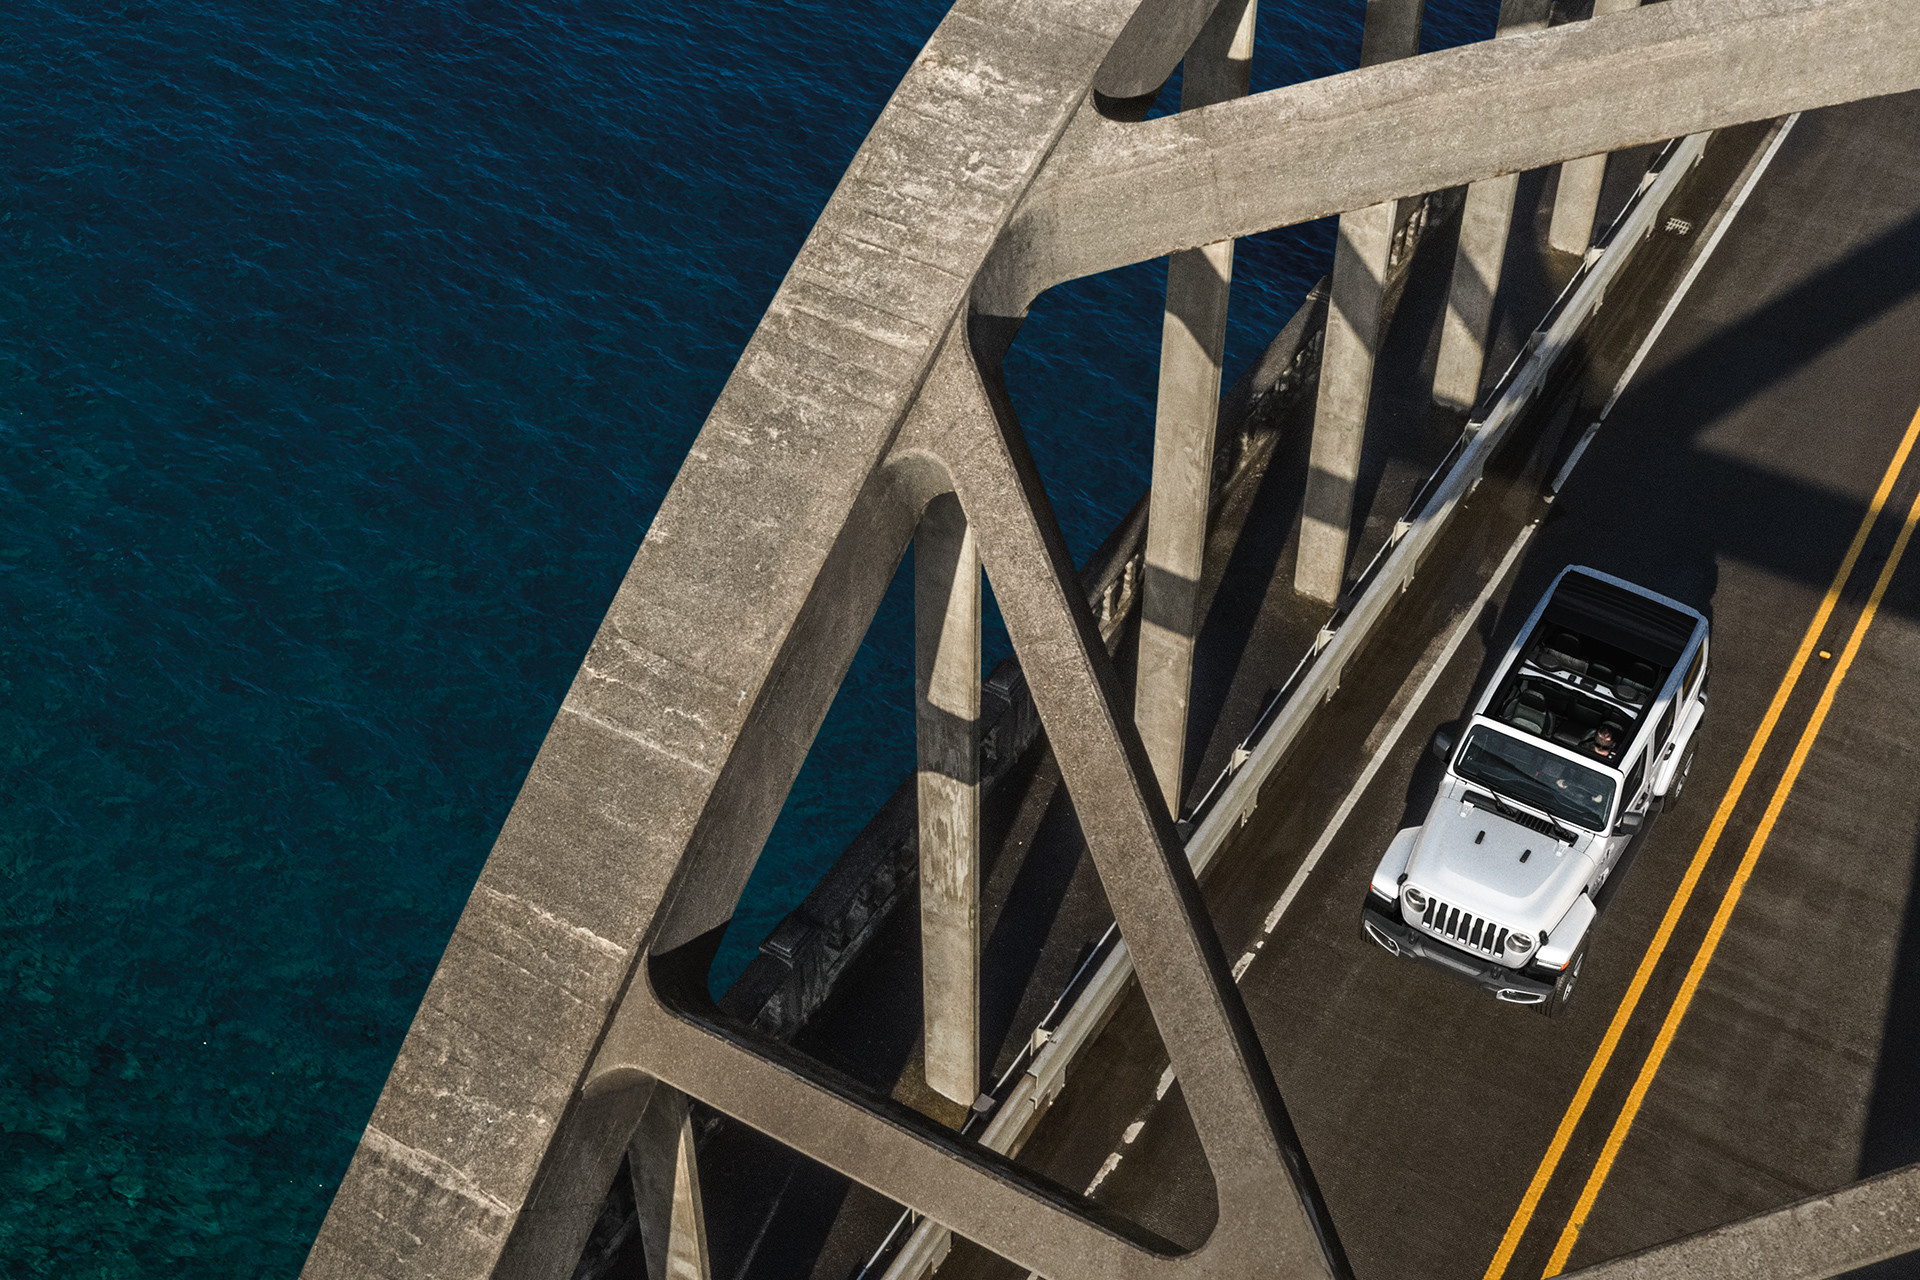 2019 Jeep Wrangler crossing a bridge, shown in white